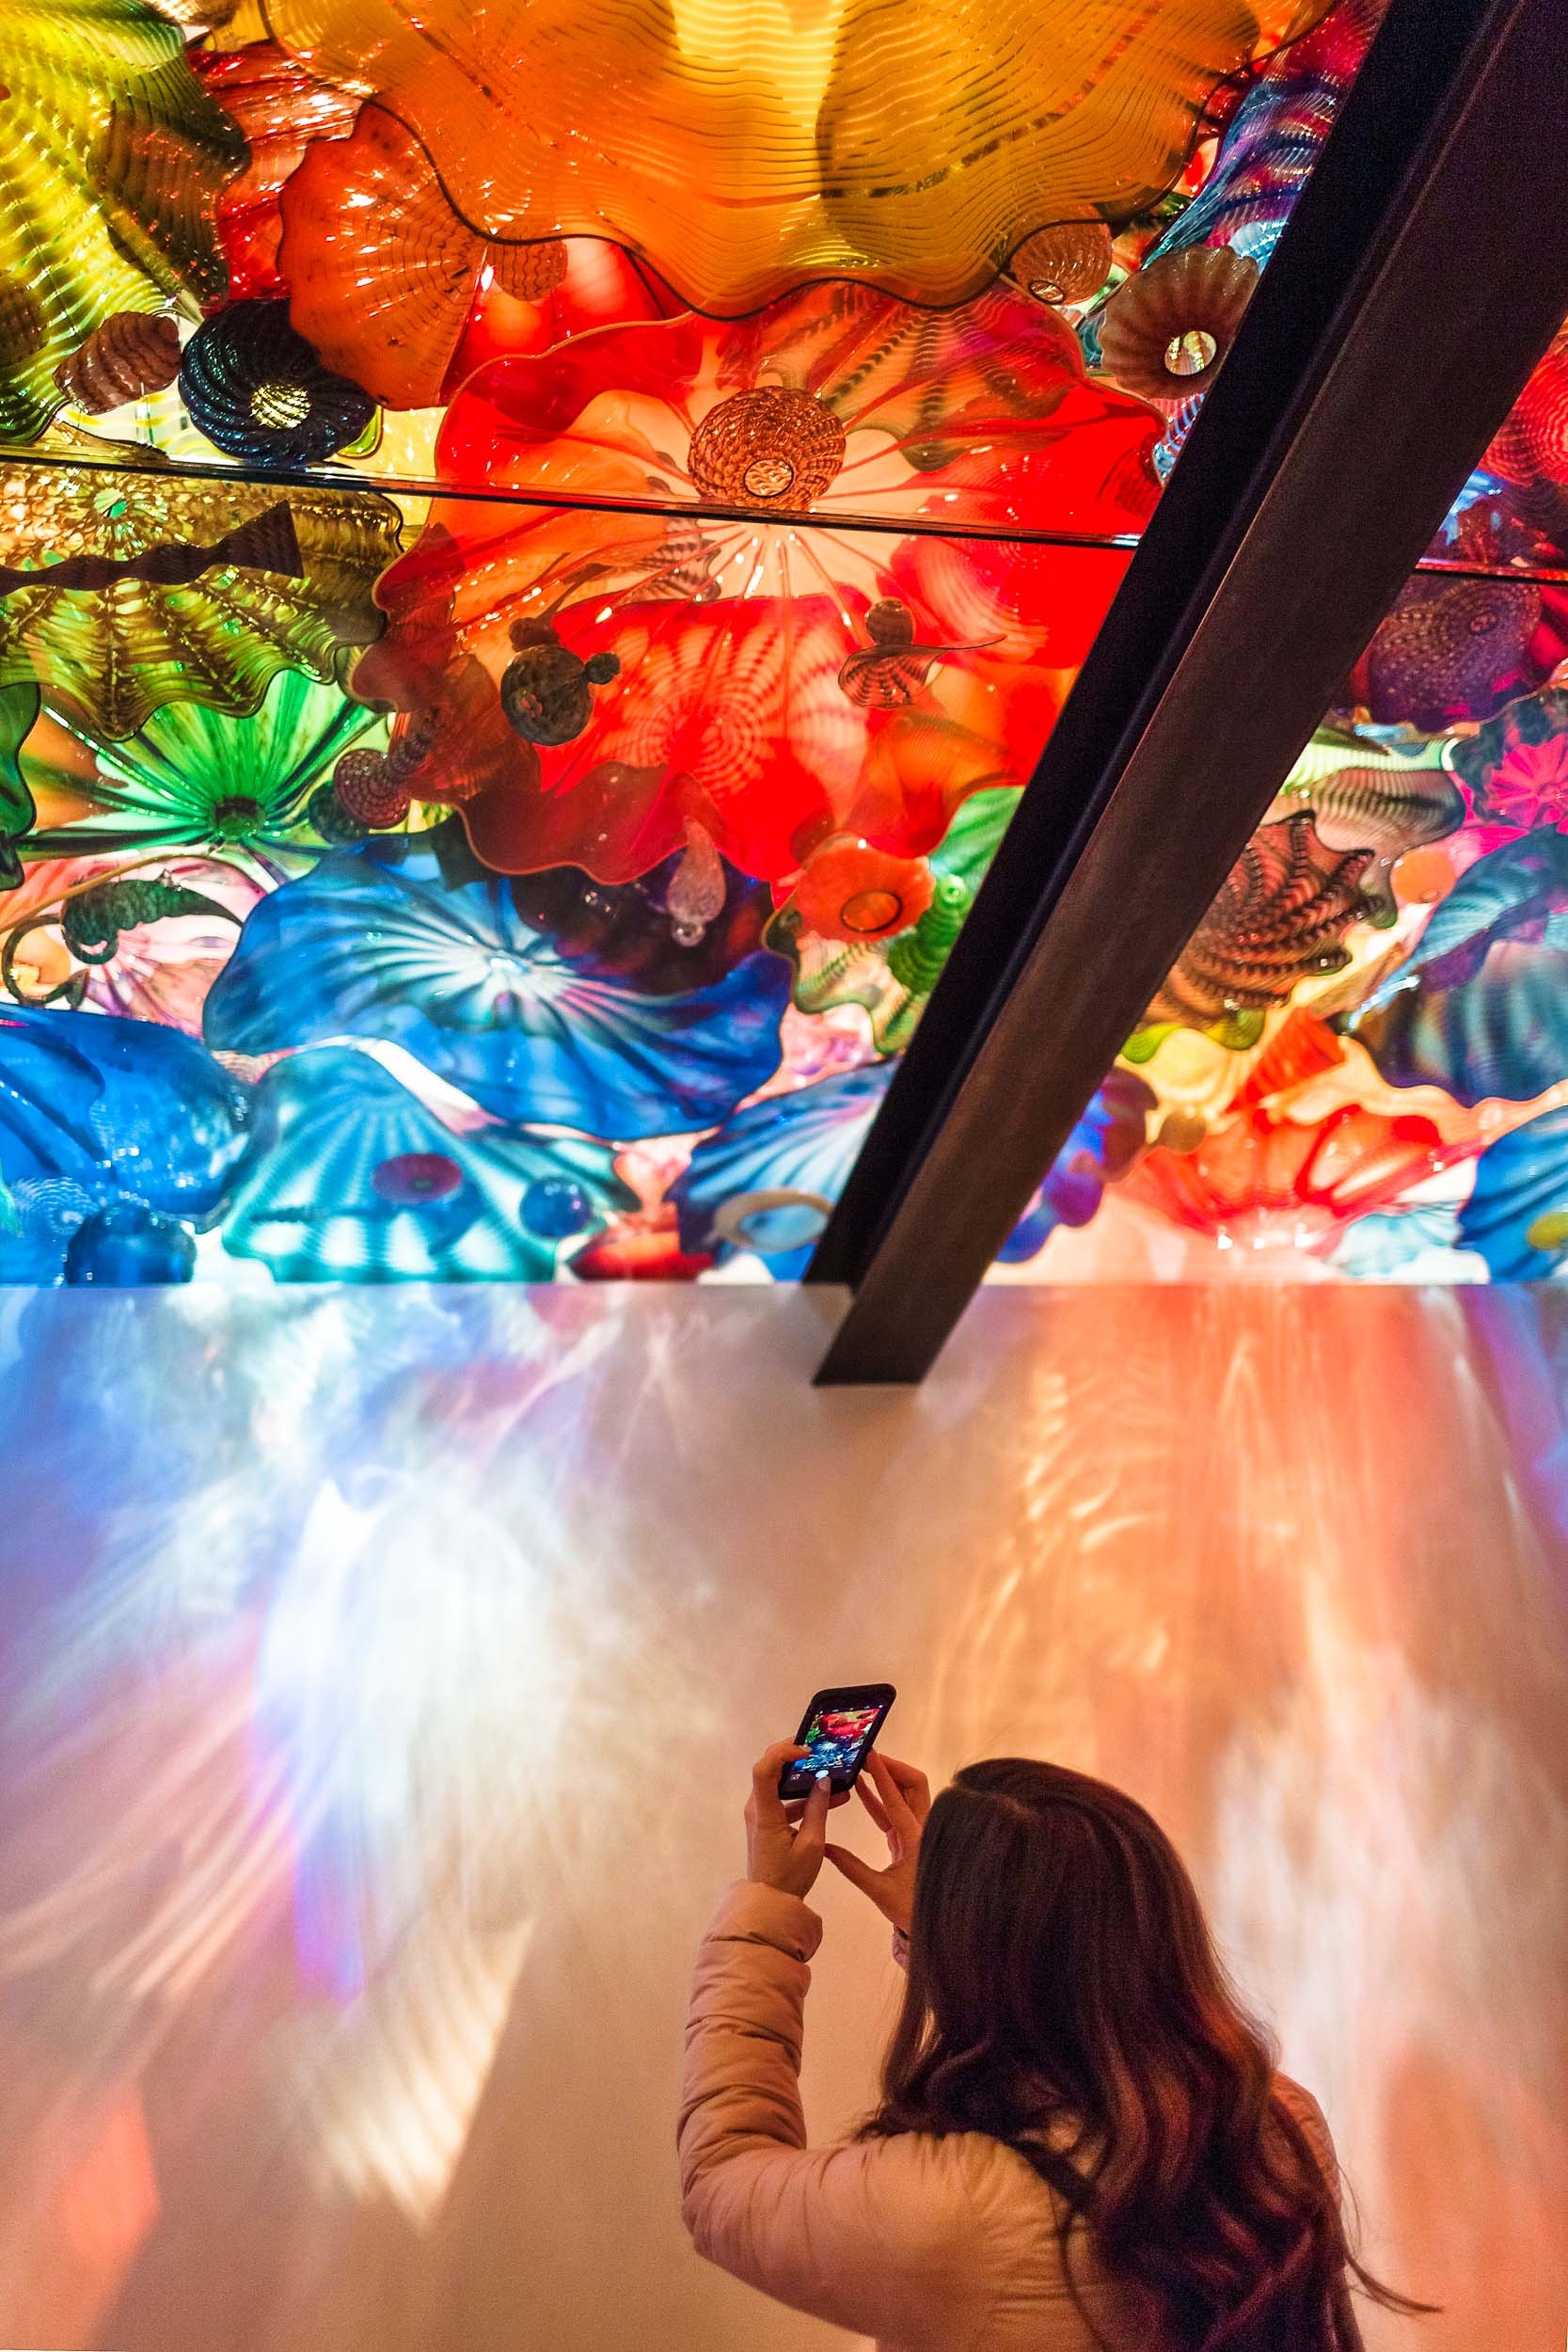 February is Seattle Museum Month which means if you book a room at participating hotels you get a museum pass for half-price tickets at 40 museums, including Chihuly Garden and Glass!